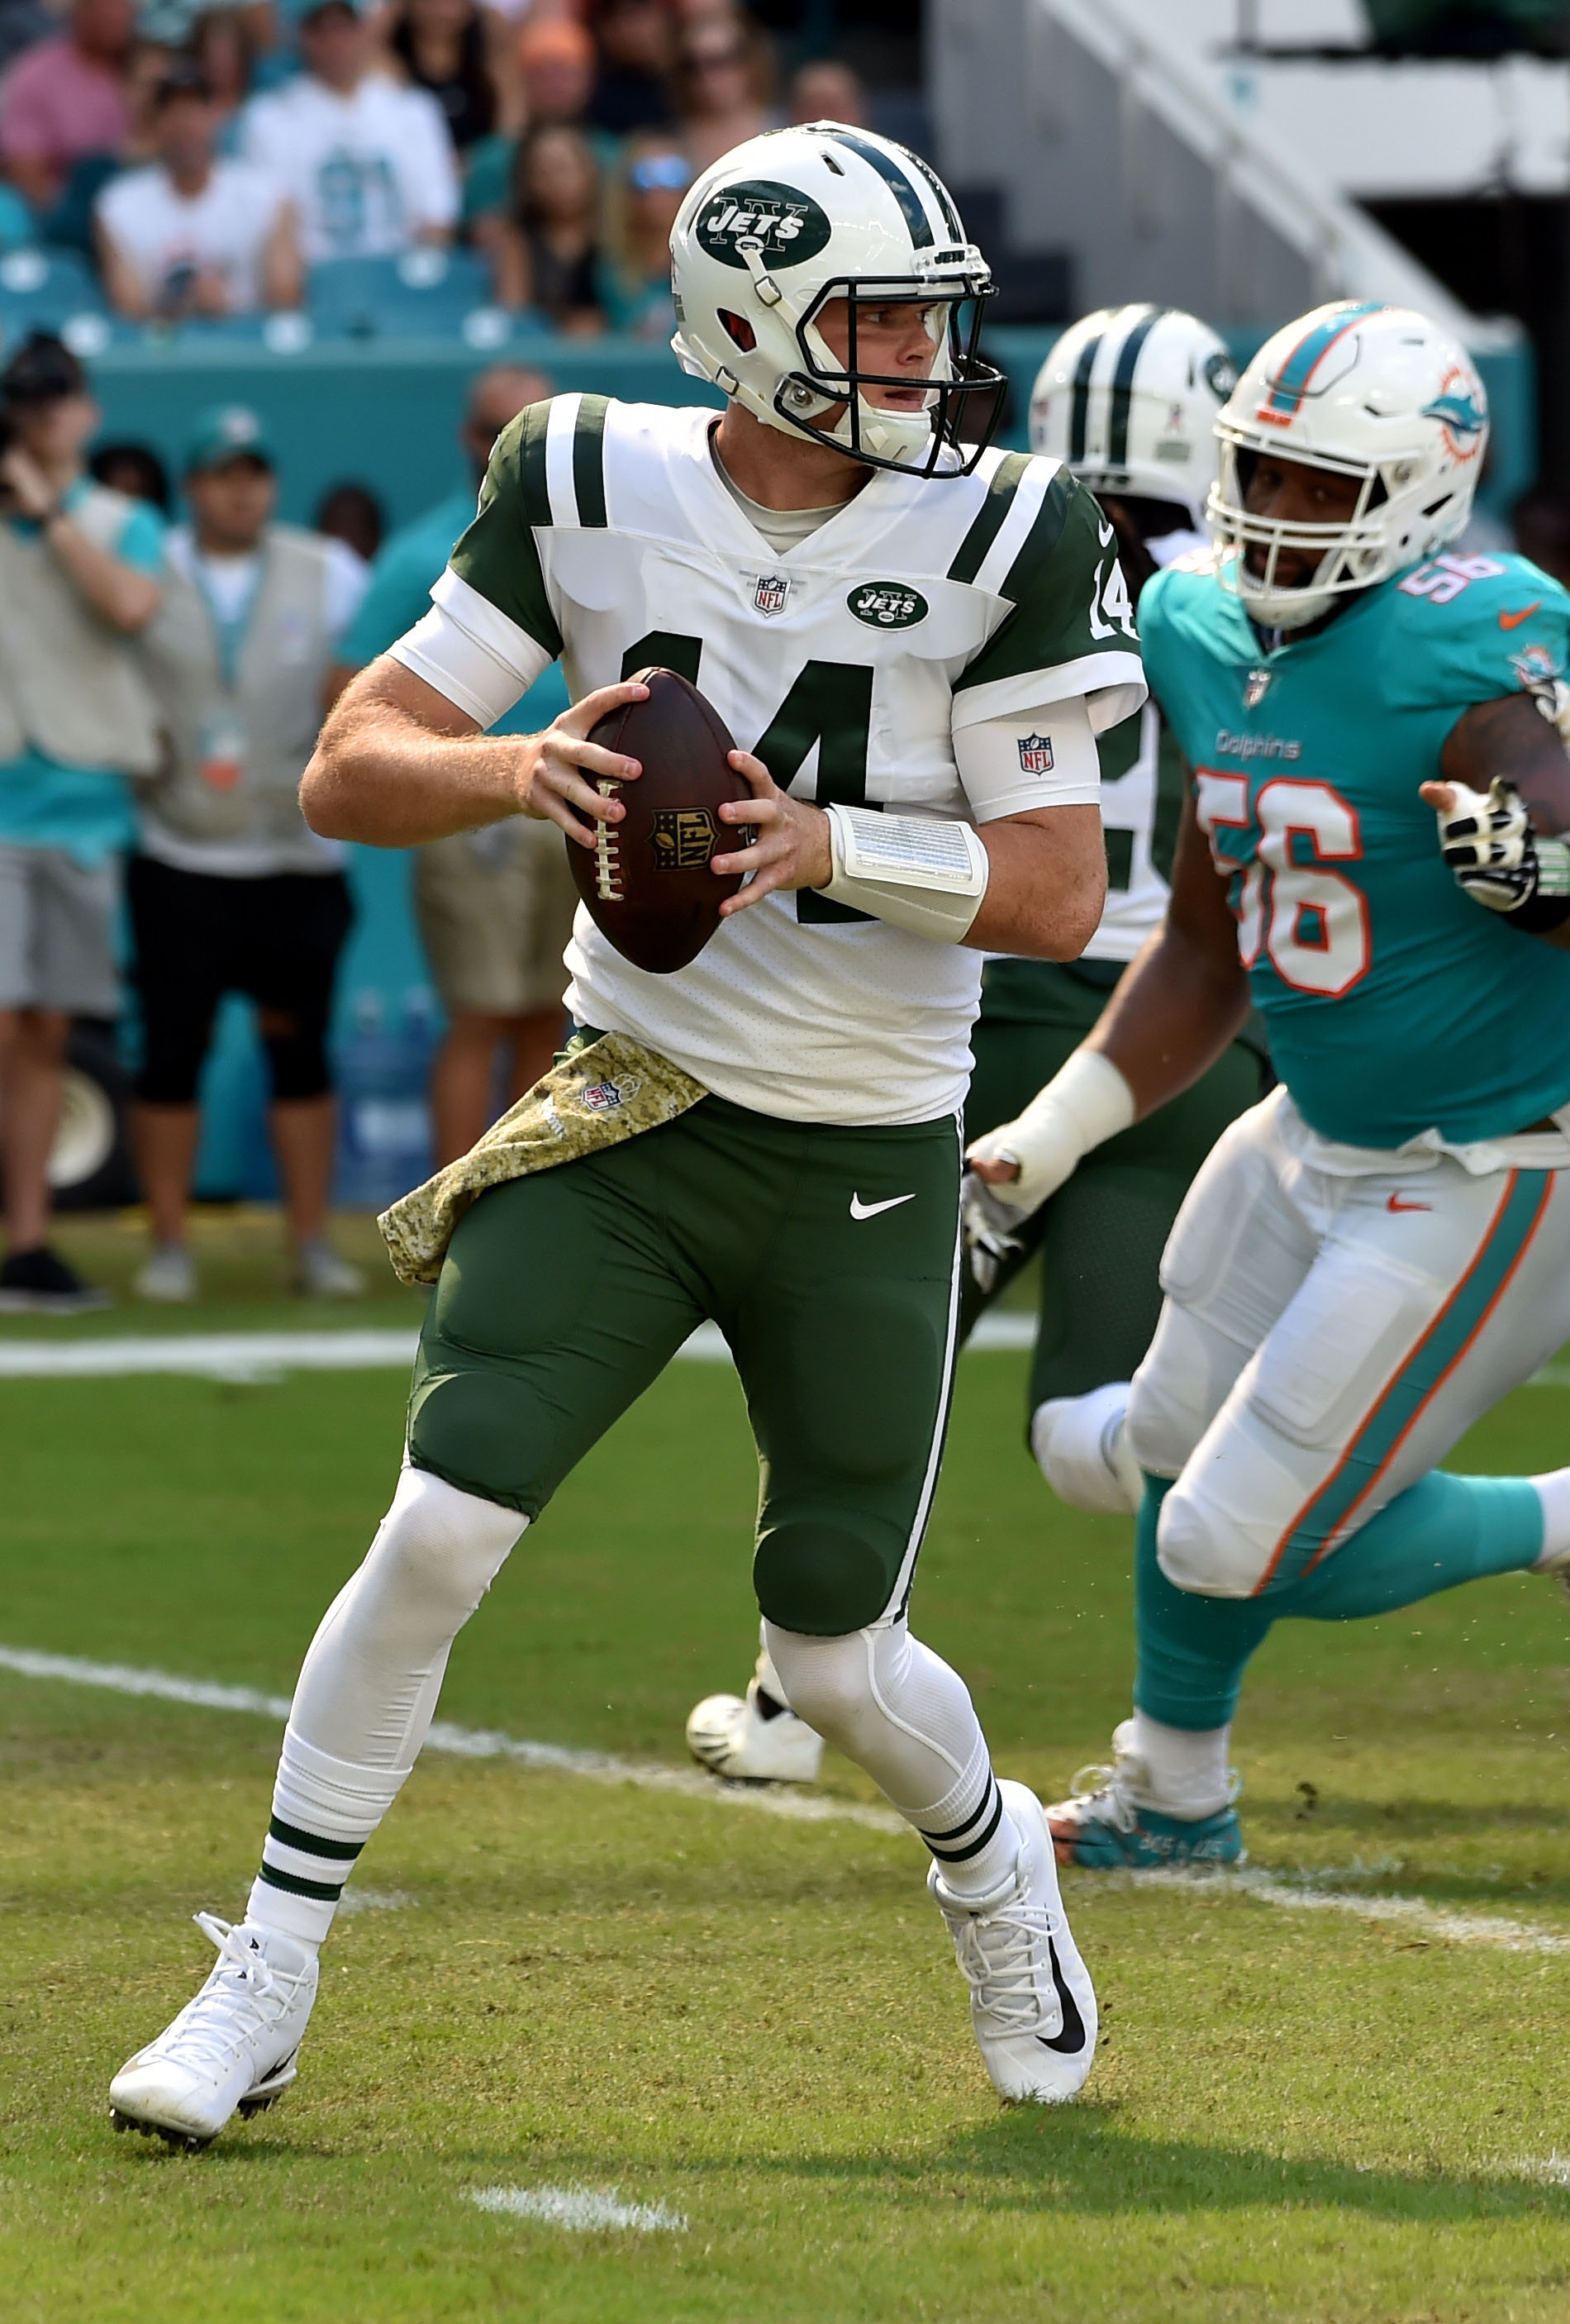 Jets Qb Sam Darnold To Miss Time